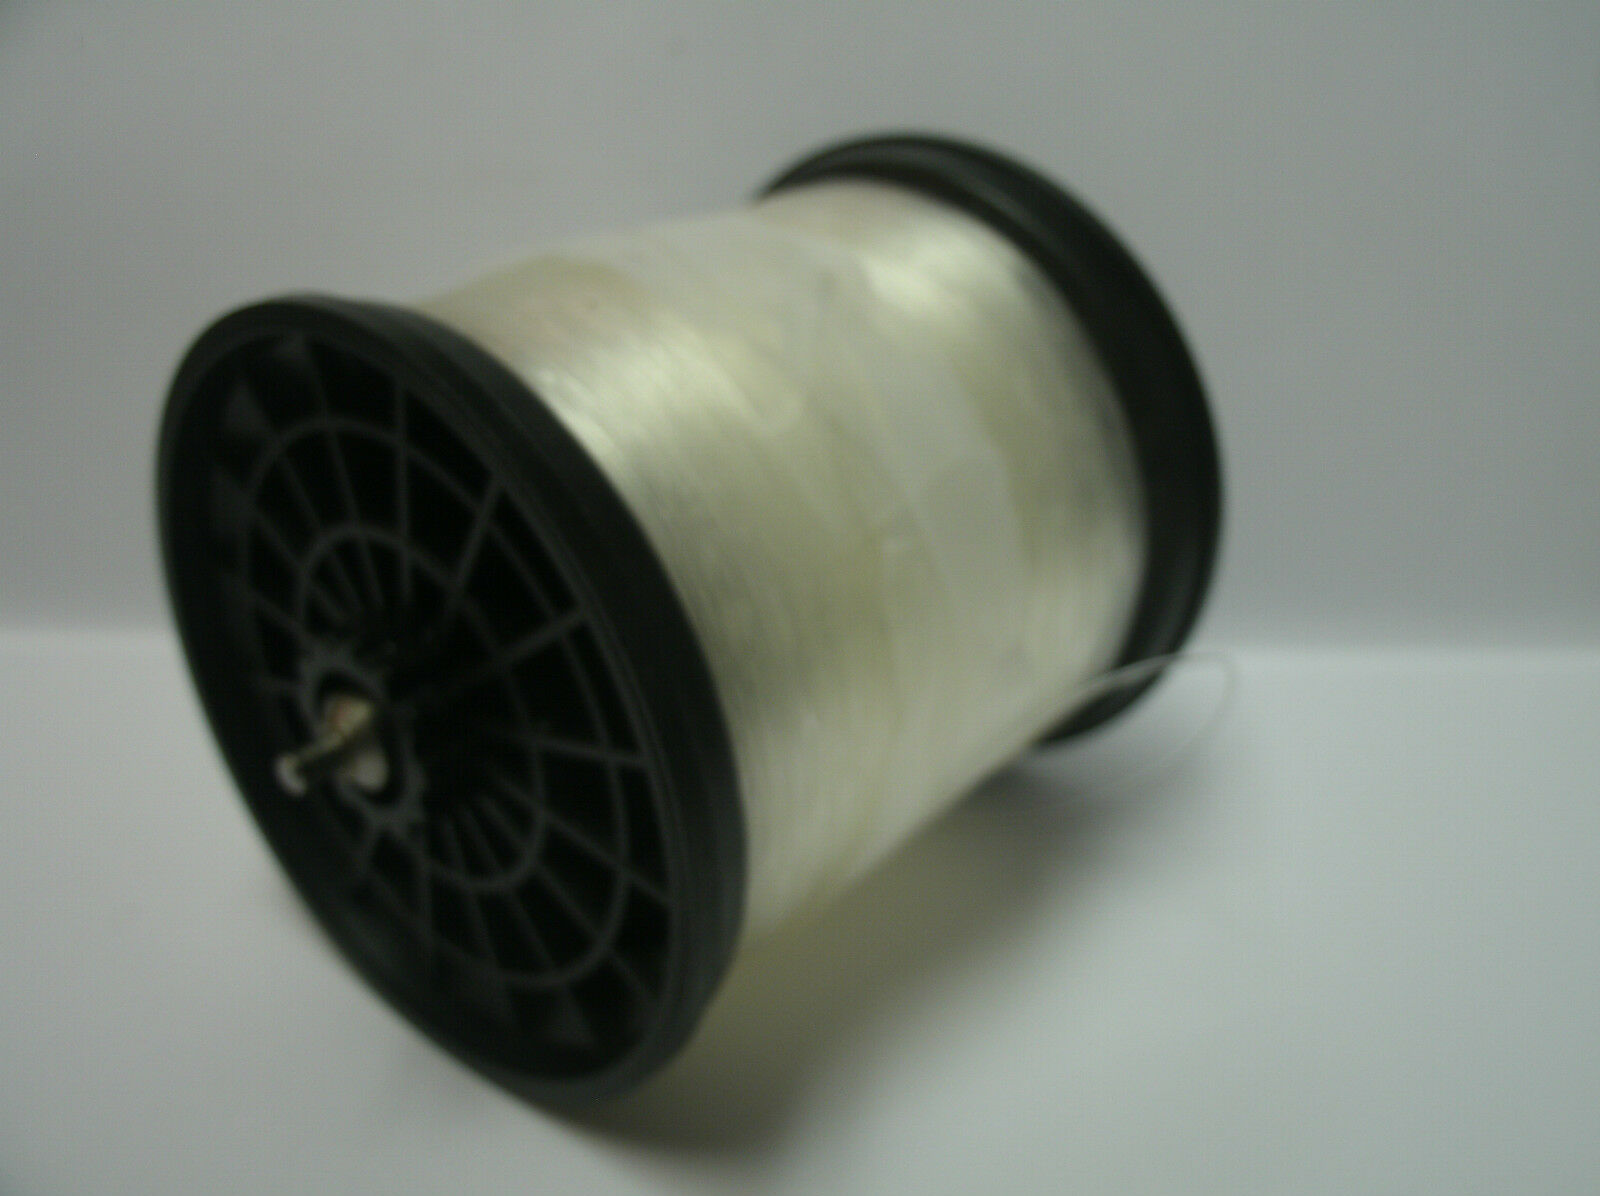 USED NEWELL BIG GAME REEL Spool PART - 540 4.6 - Spool REEL Assembly e4116a